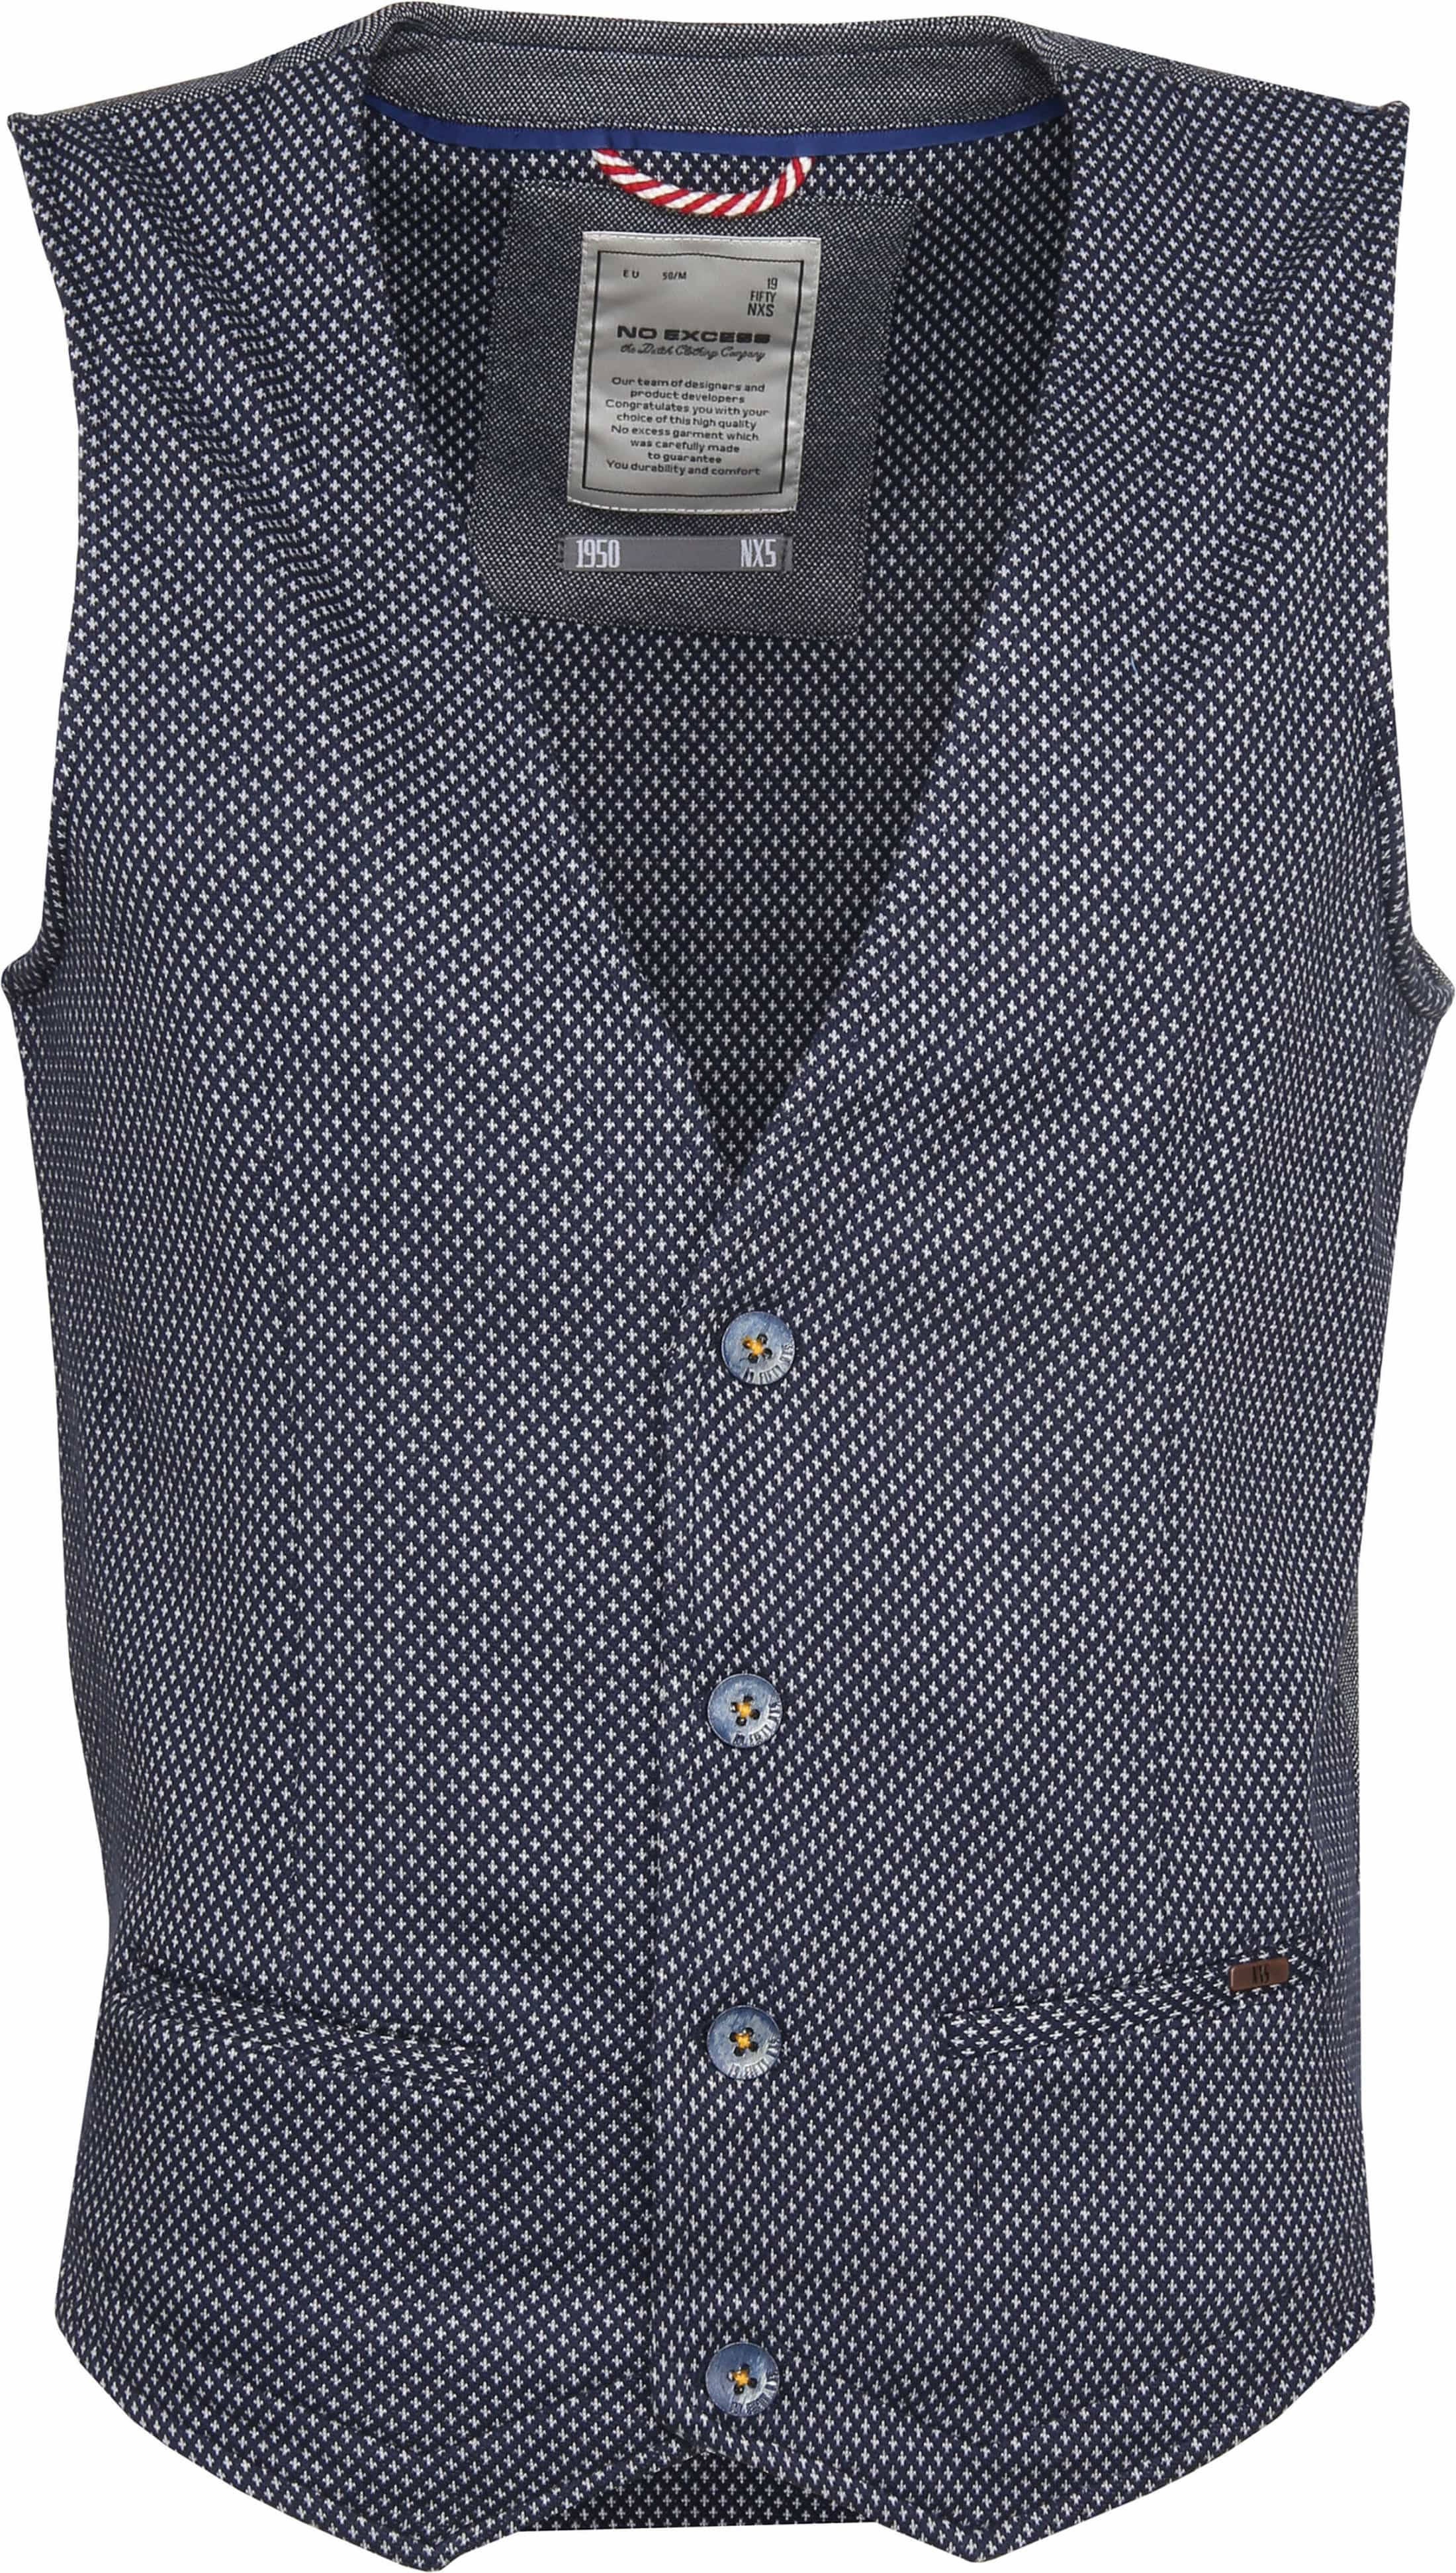 No-Excess Waistcoat Dyed Jacquard foto 0